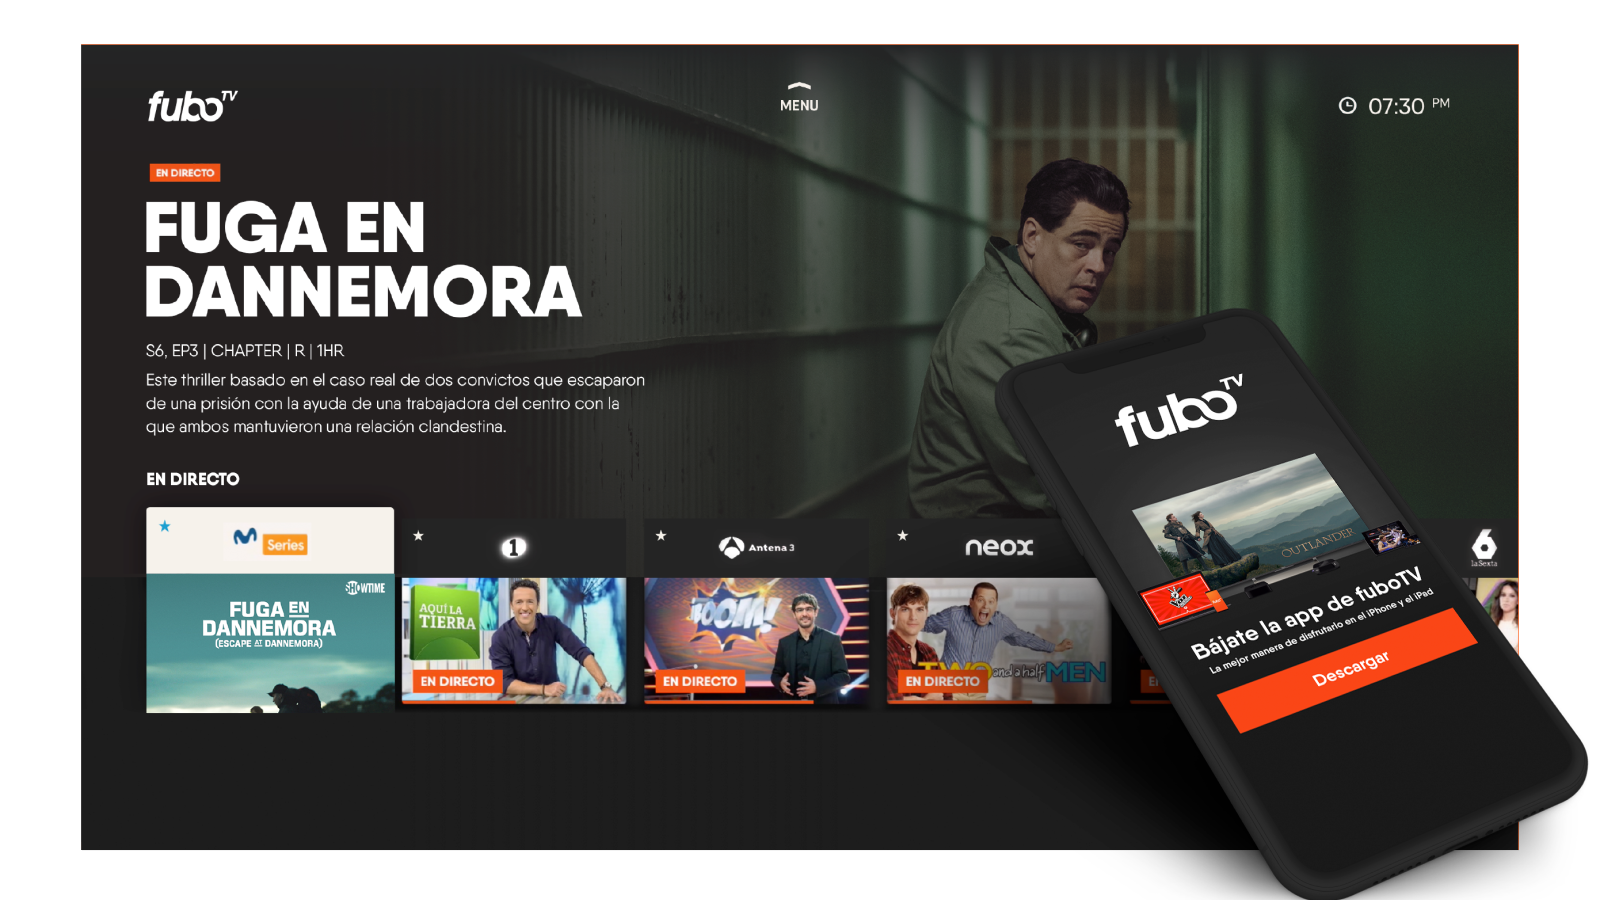 fuboTV Launches in Spain, the First US Live TV Platform to Do So